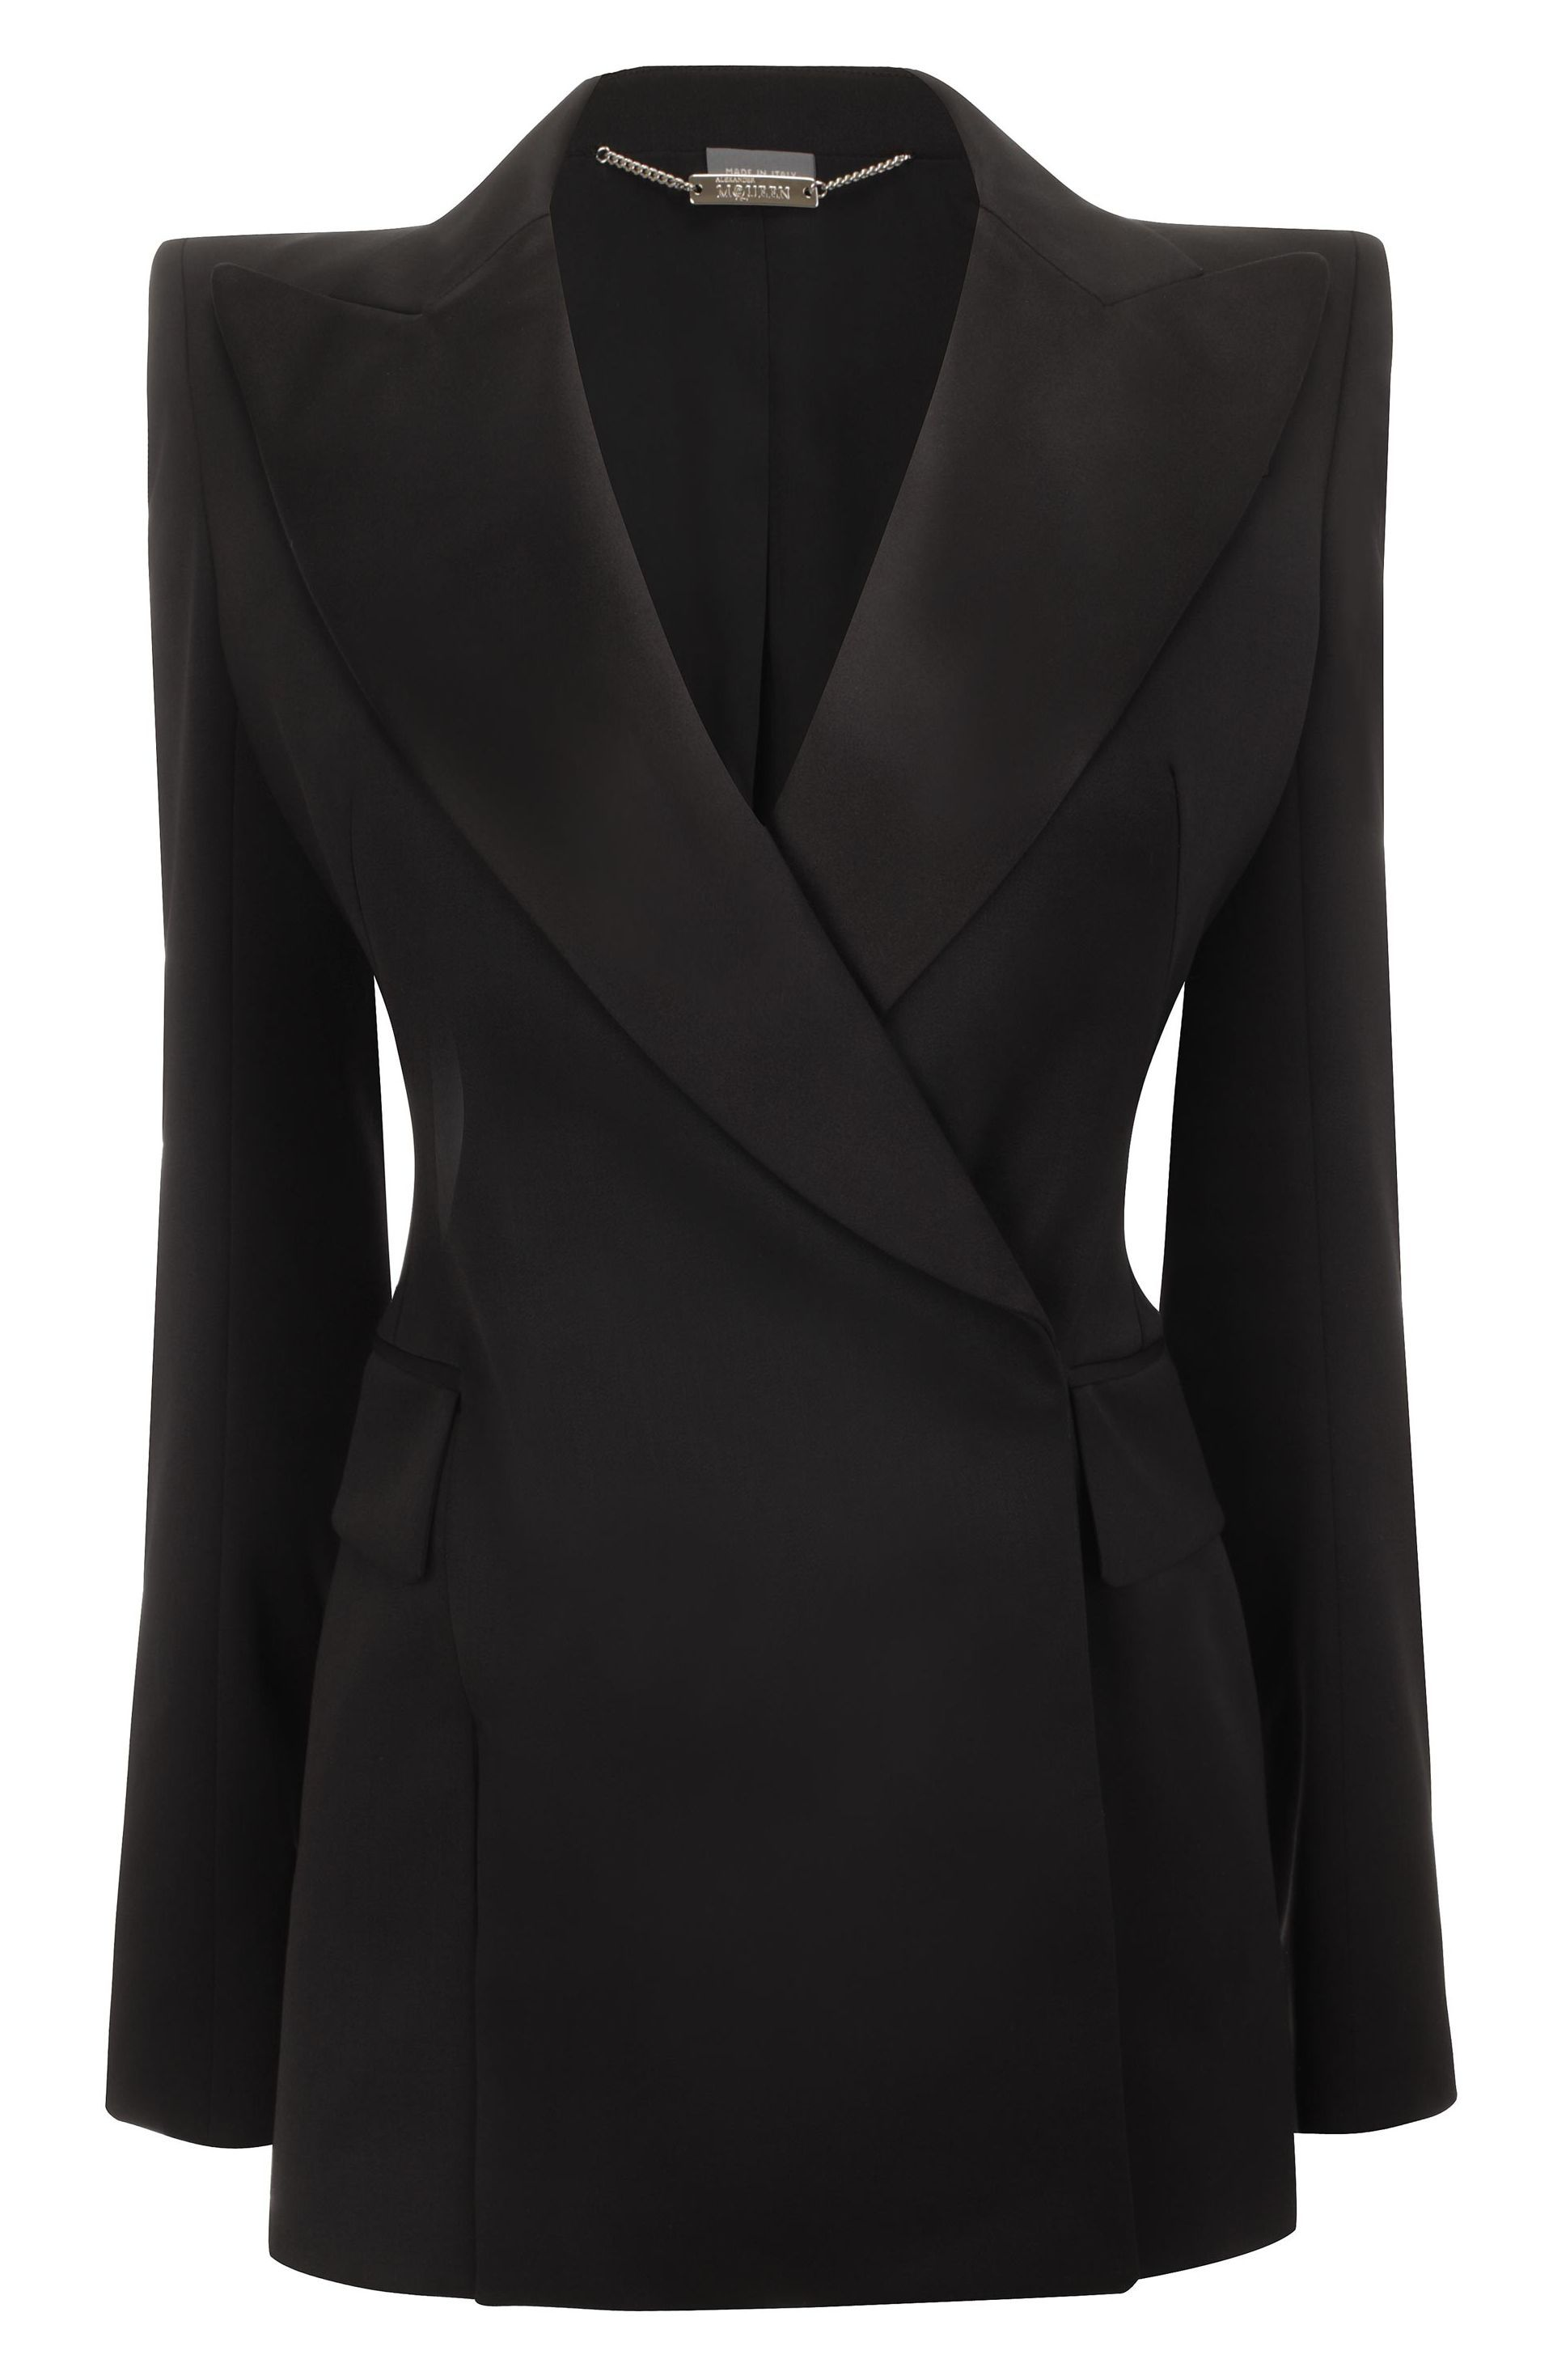 Alexander Mcqueen Woman Wool And Silk-blend Peplum Tuxedo Blazer Black Size 40 Alexander McQueen Cheap Sale Get To Buy Cheap Best With Mastercard Sale Online Outlet Low Cost Best Sale Sale Online mUaLPZM